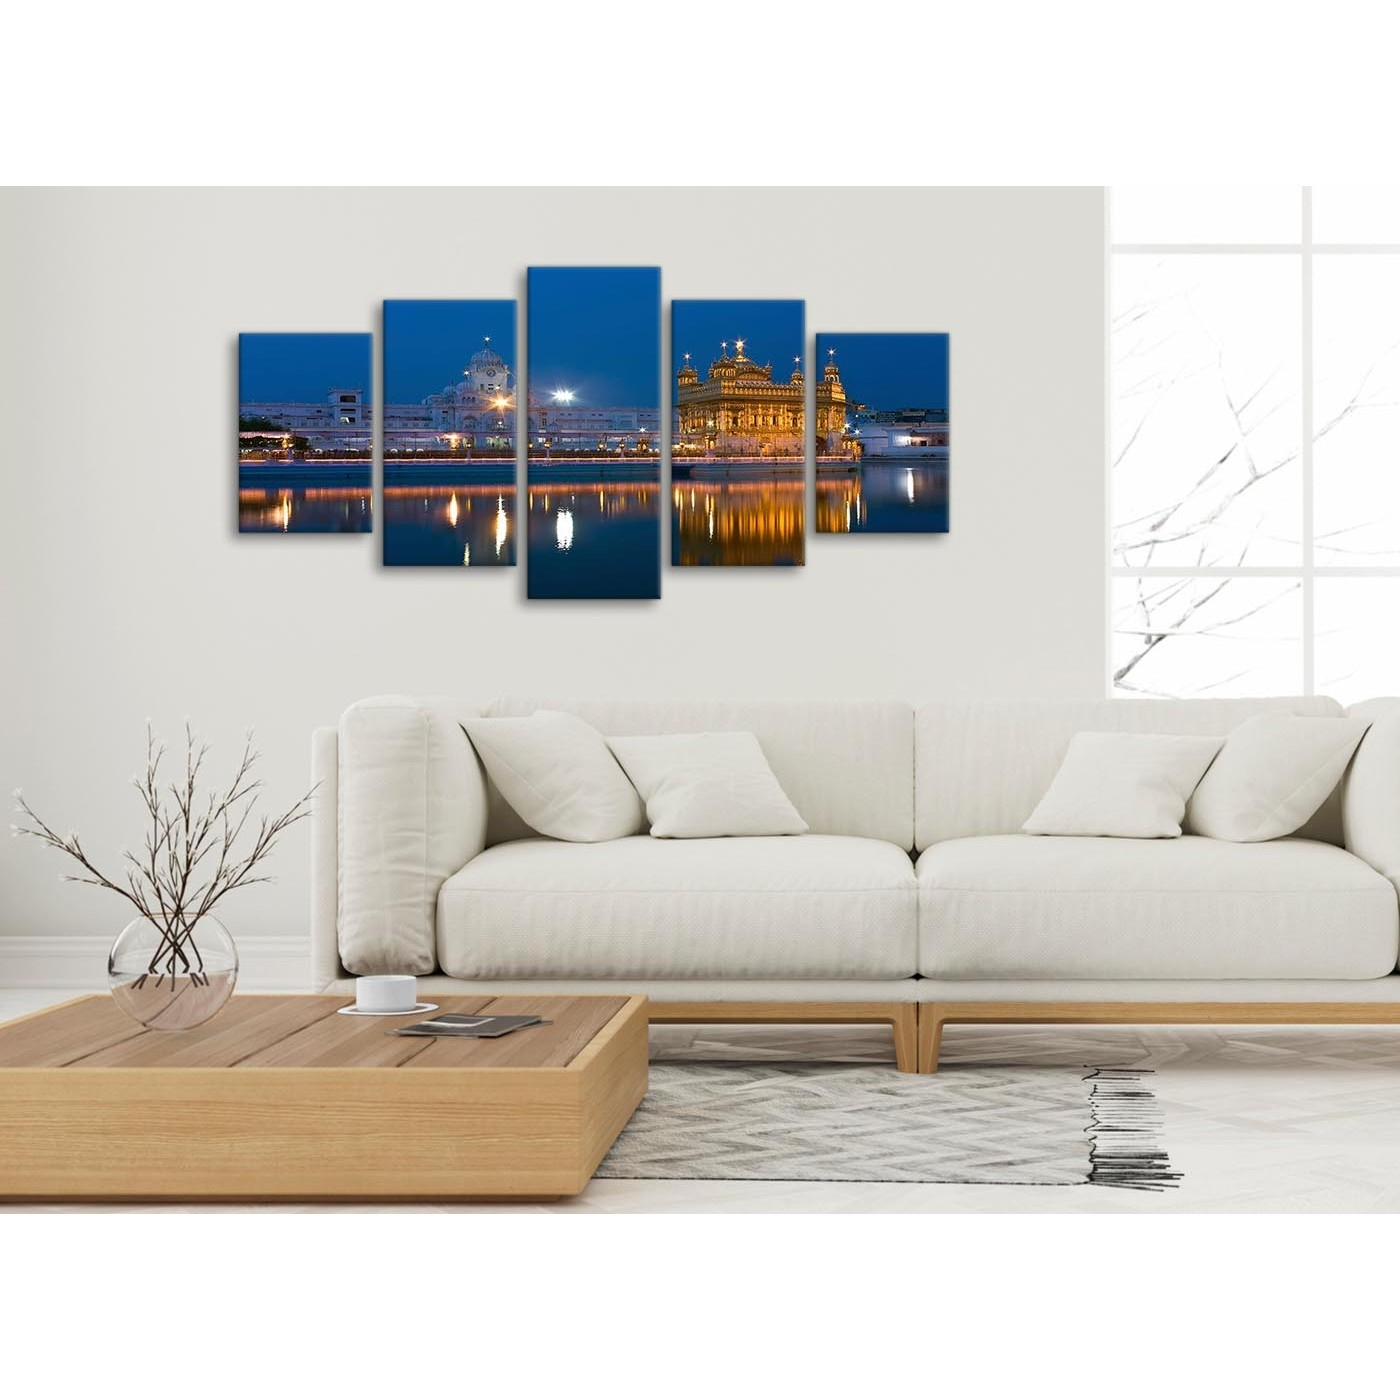 5 Panel Canvas Wall Art Pictures - Sikh Golden Temple Amritsar intended for Most Current 5 Piece Wall Art